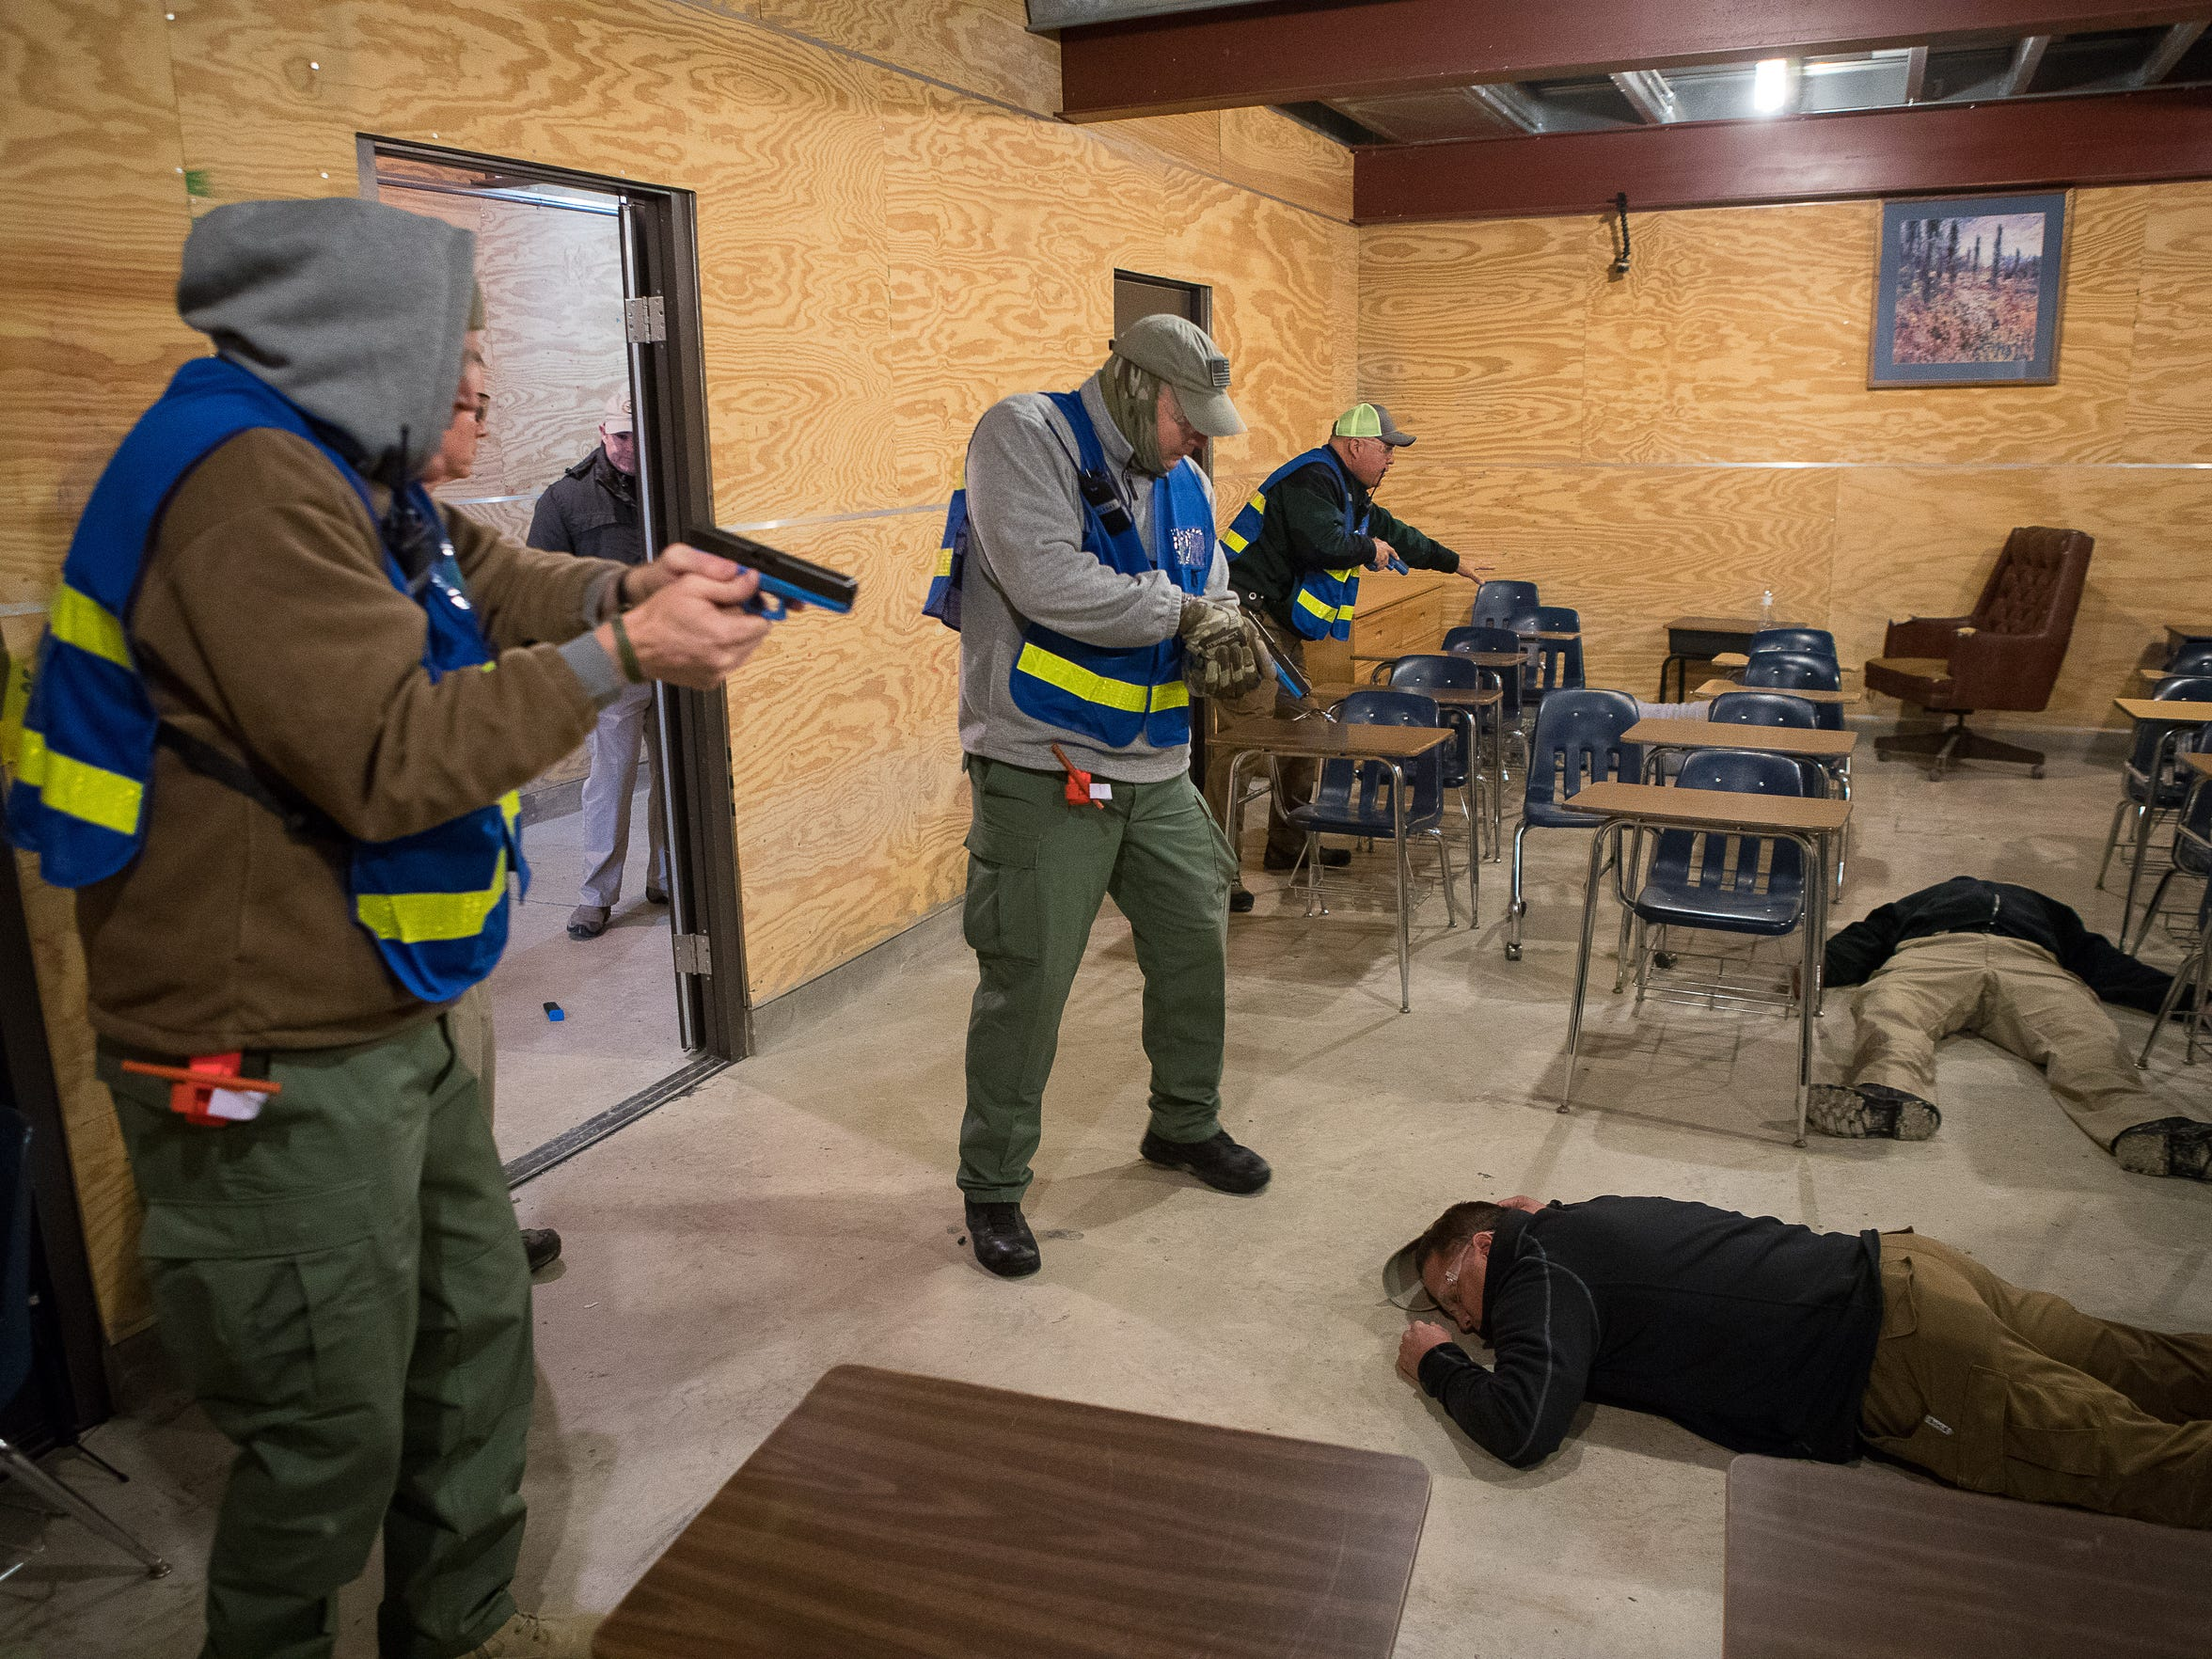 Police officers clear a room as they take part in active shooter training conducted by Advanced Law Enforcement Rapid Response Training: Center in Maxwell, Texas on Feb. 14, 2018.